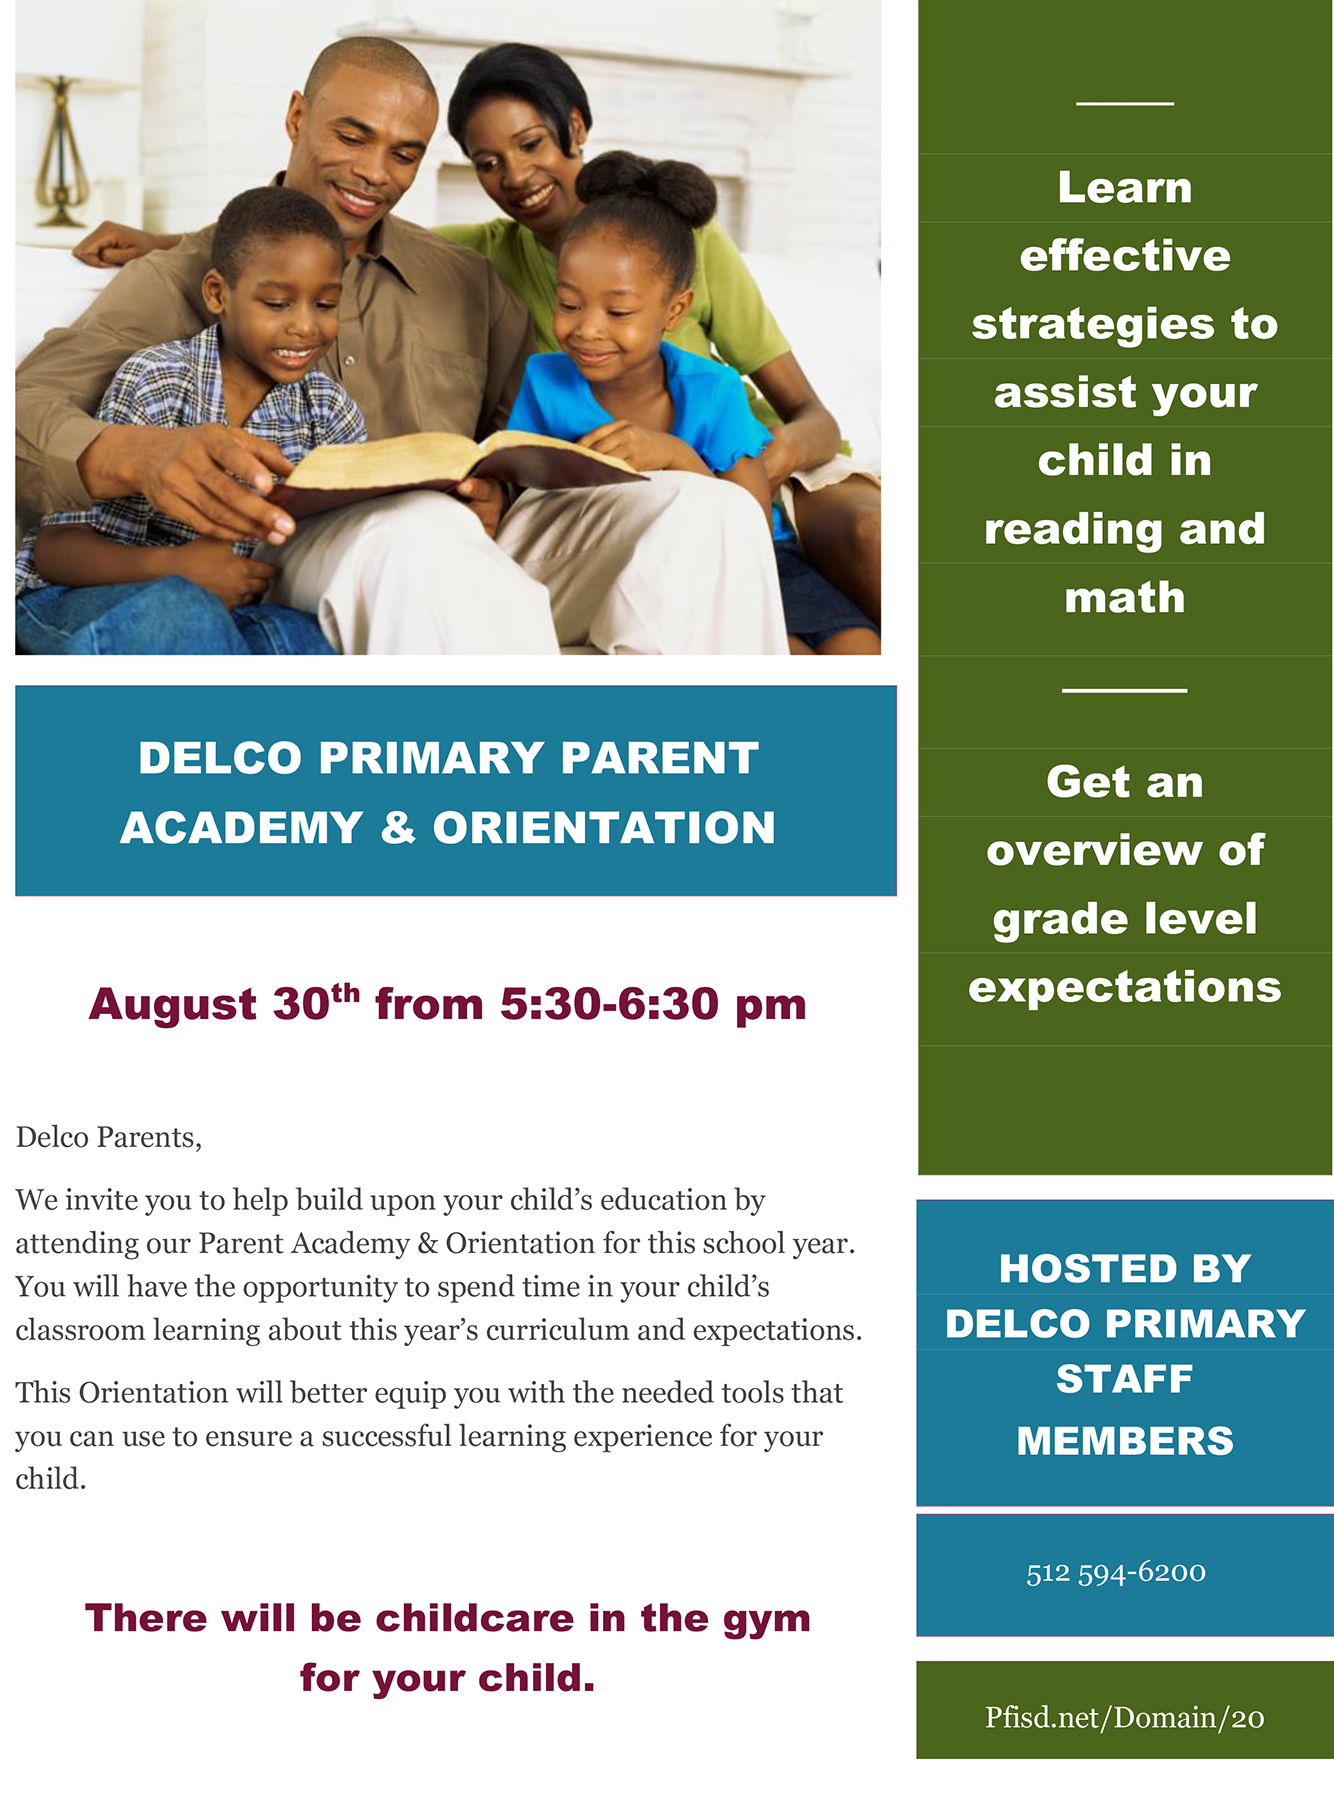 Delco Primary Parent Academy and Orientation